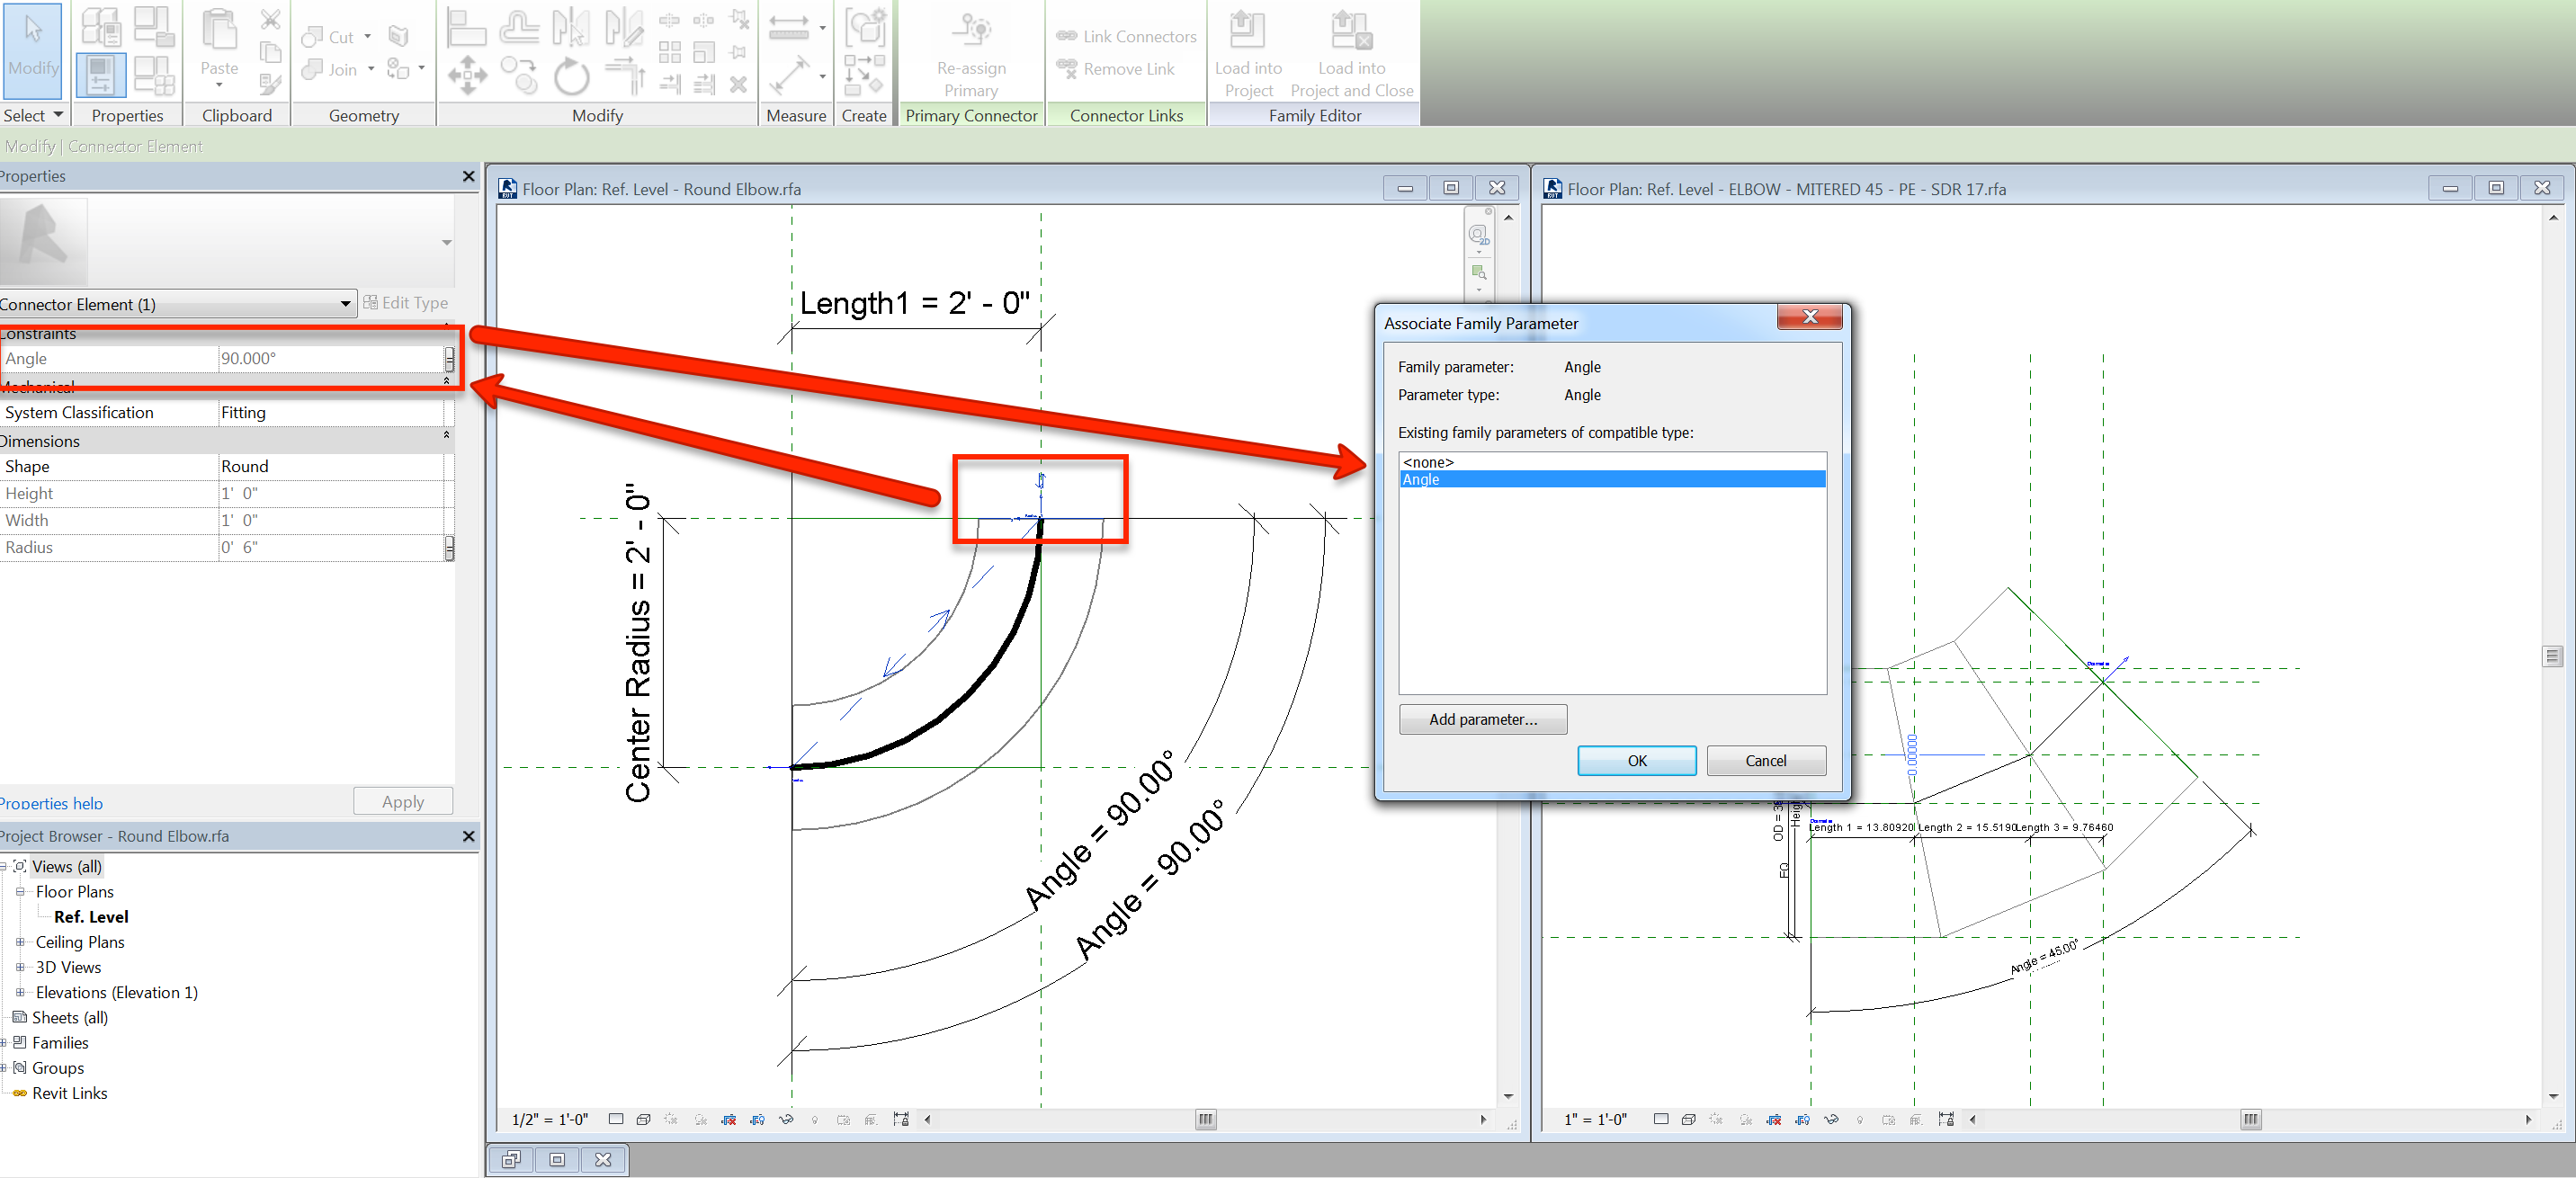 Revit Drawing Duct Or Pipe With Custom Elbow Results In No Auto Hvac User Added Image